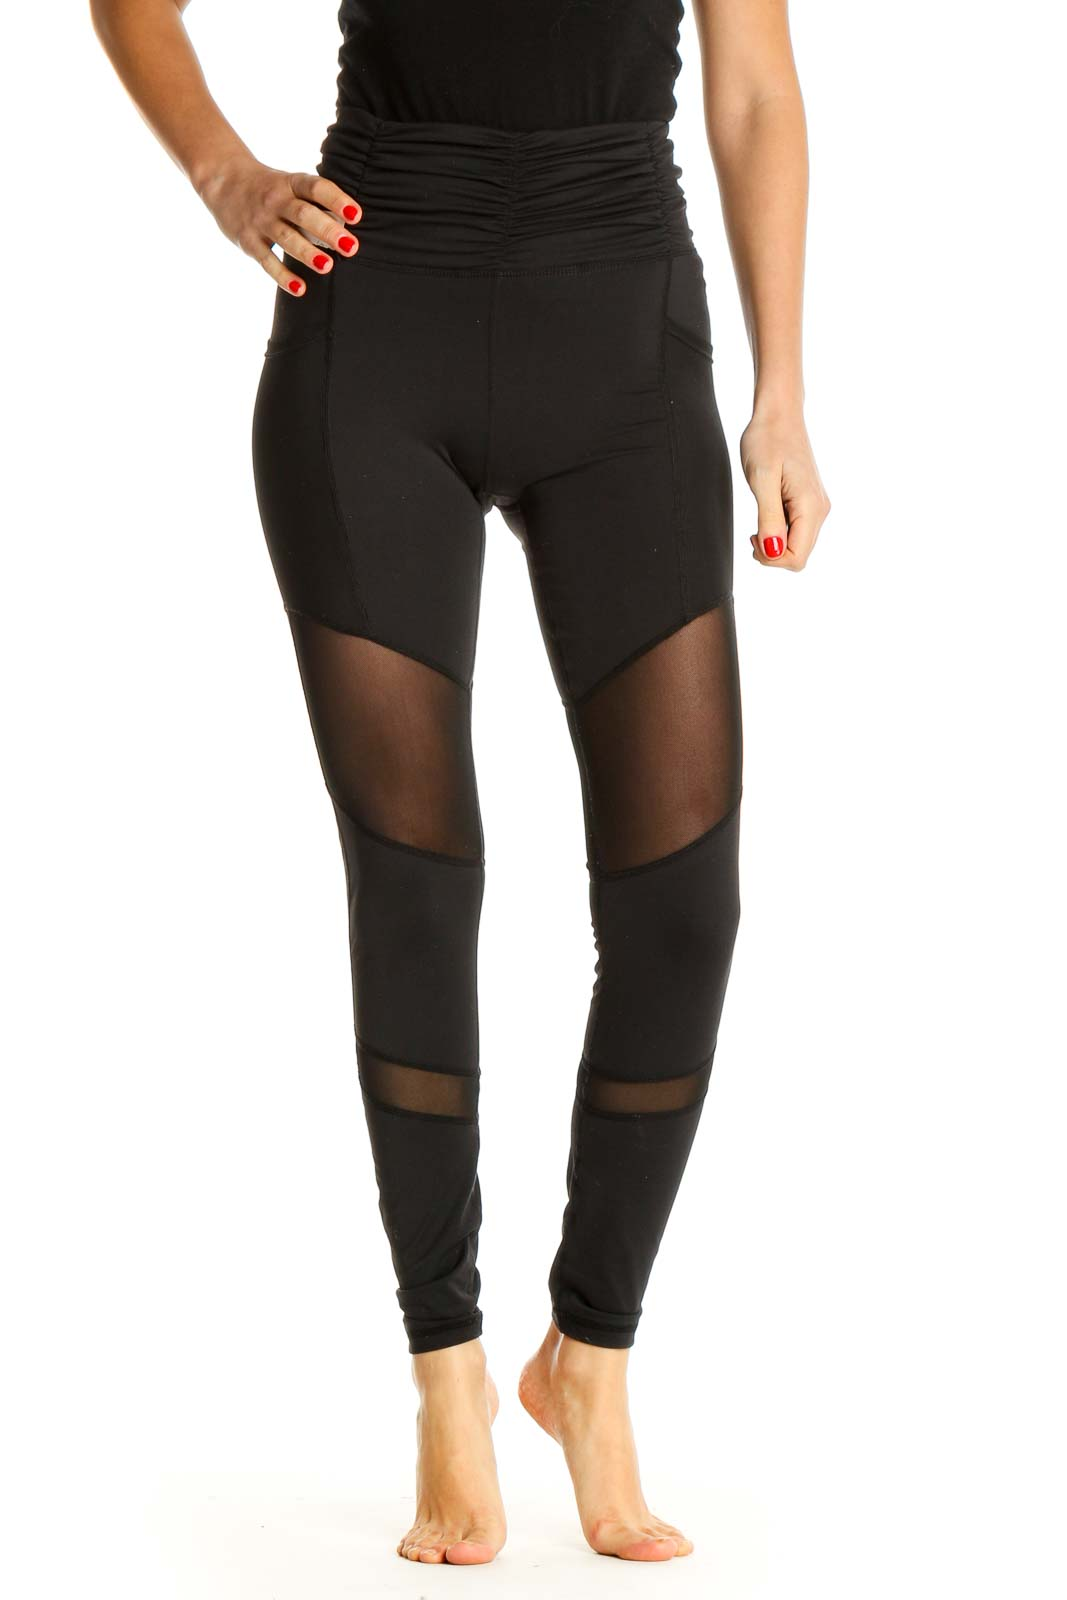 Black Textured Activewear Leggings Front